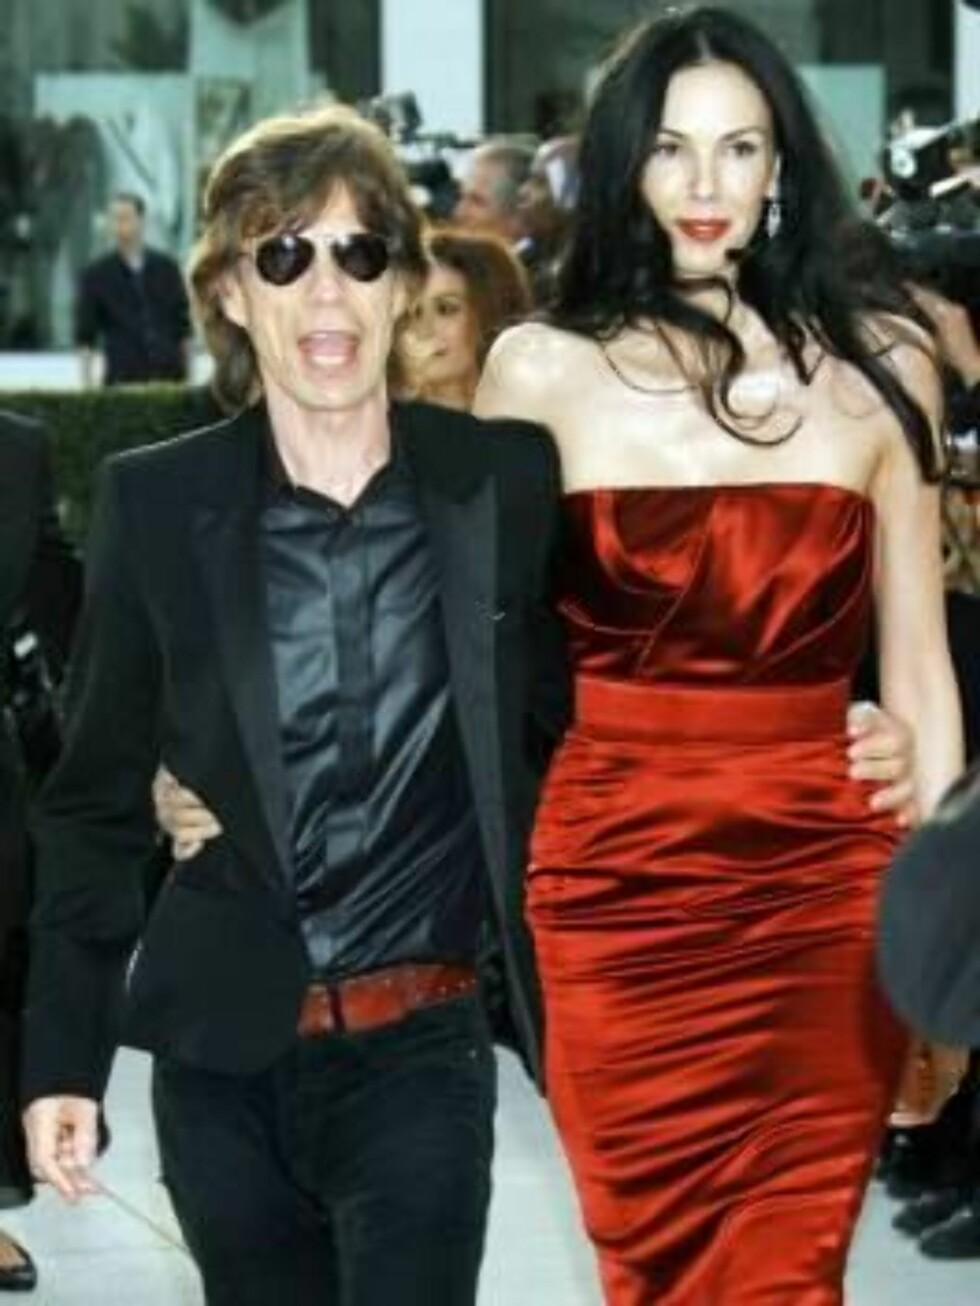 New York, NY - 3/5/2006- Vanity Fair Oscar Party hosted by Graydon Carter, held at Morton's.  -PICTURED: Mick Jagger and L'Wren Scott -PHOTO by: Bill Davila/startraksphoto.com -BDL1000348 Foto: All Over Press